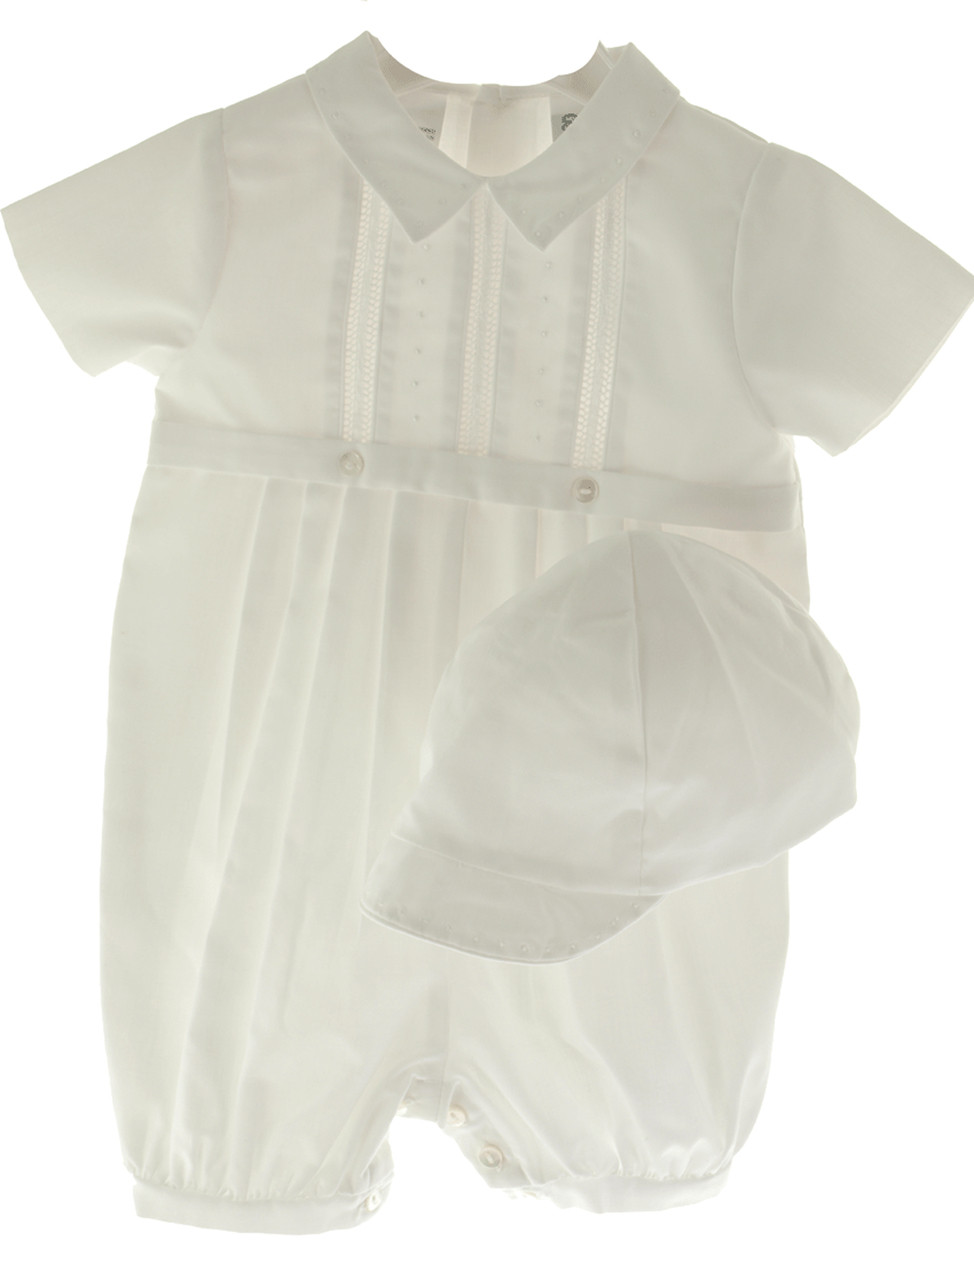 c3726e2e7 ... Preemie Baby Clothes · SALE · Home · Boys · 3M to 9M; Sarah Louise Boys  White Christening Romper & Cap. Loading zoom